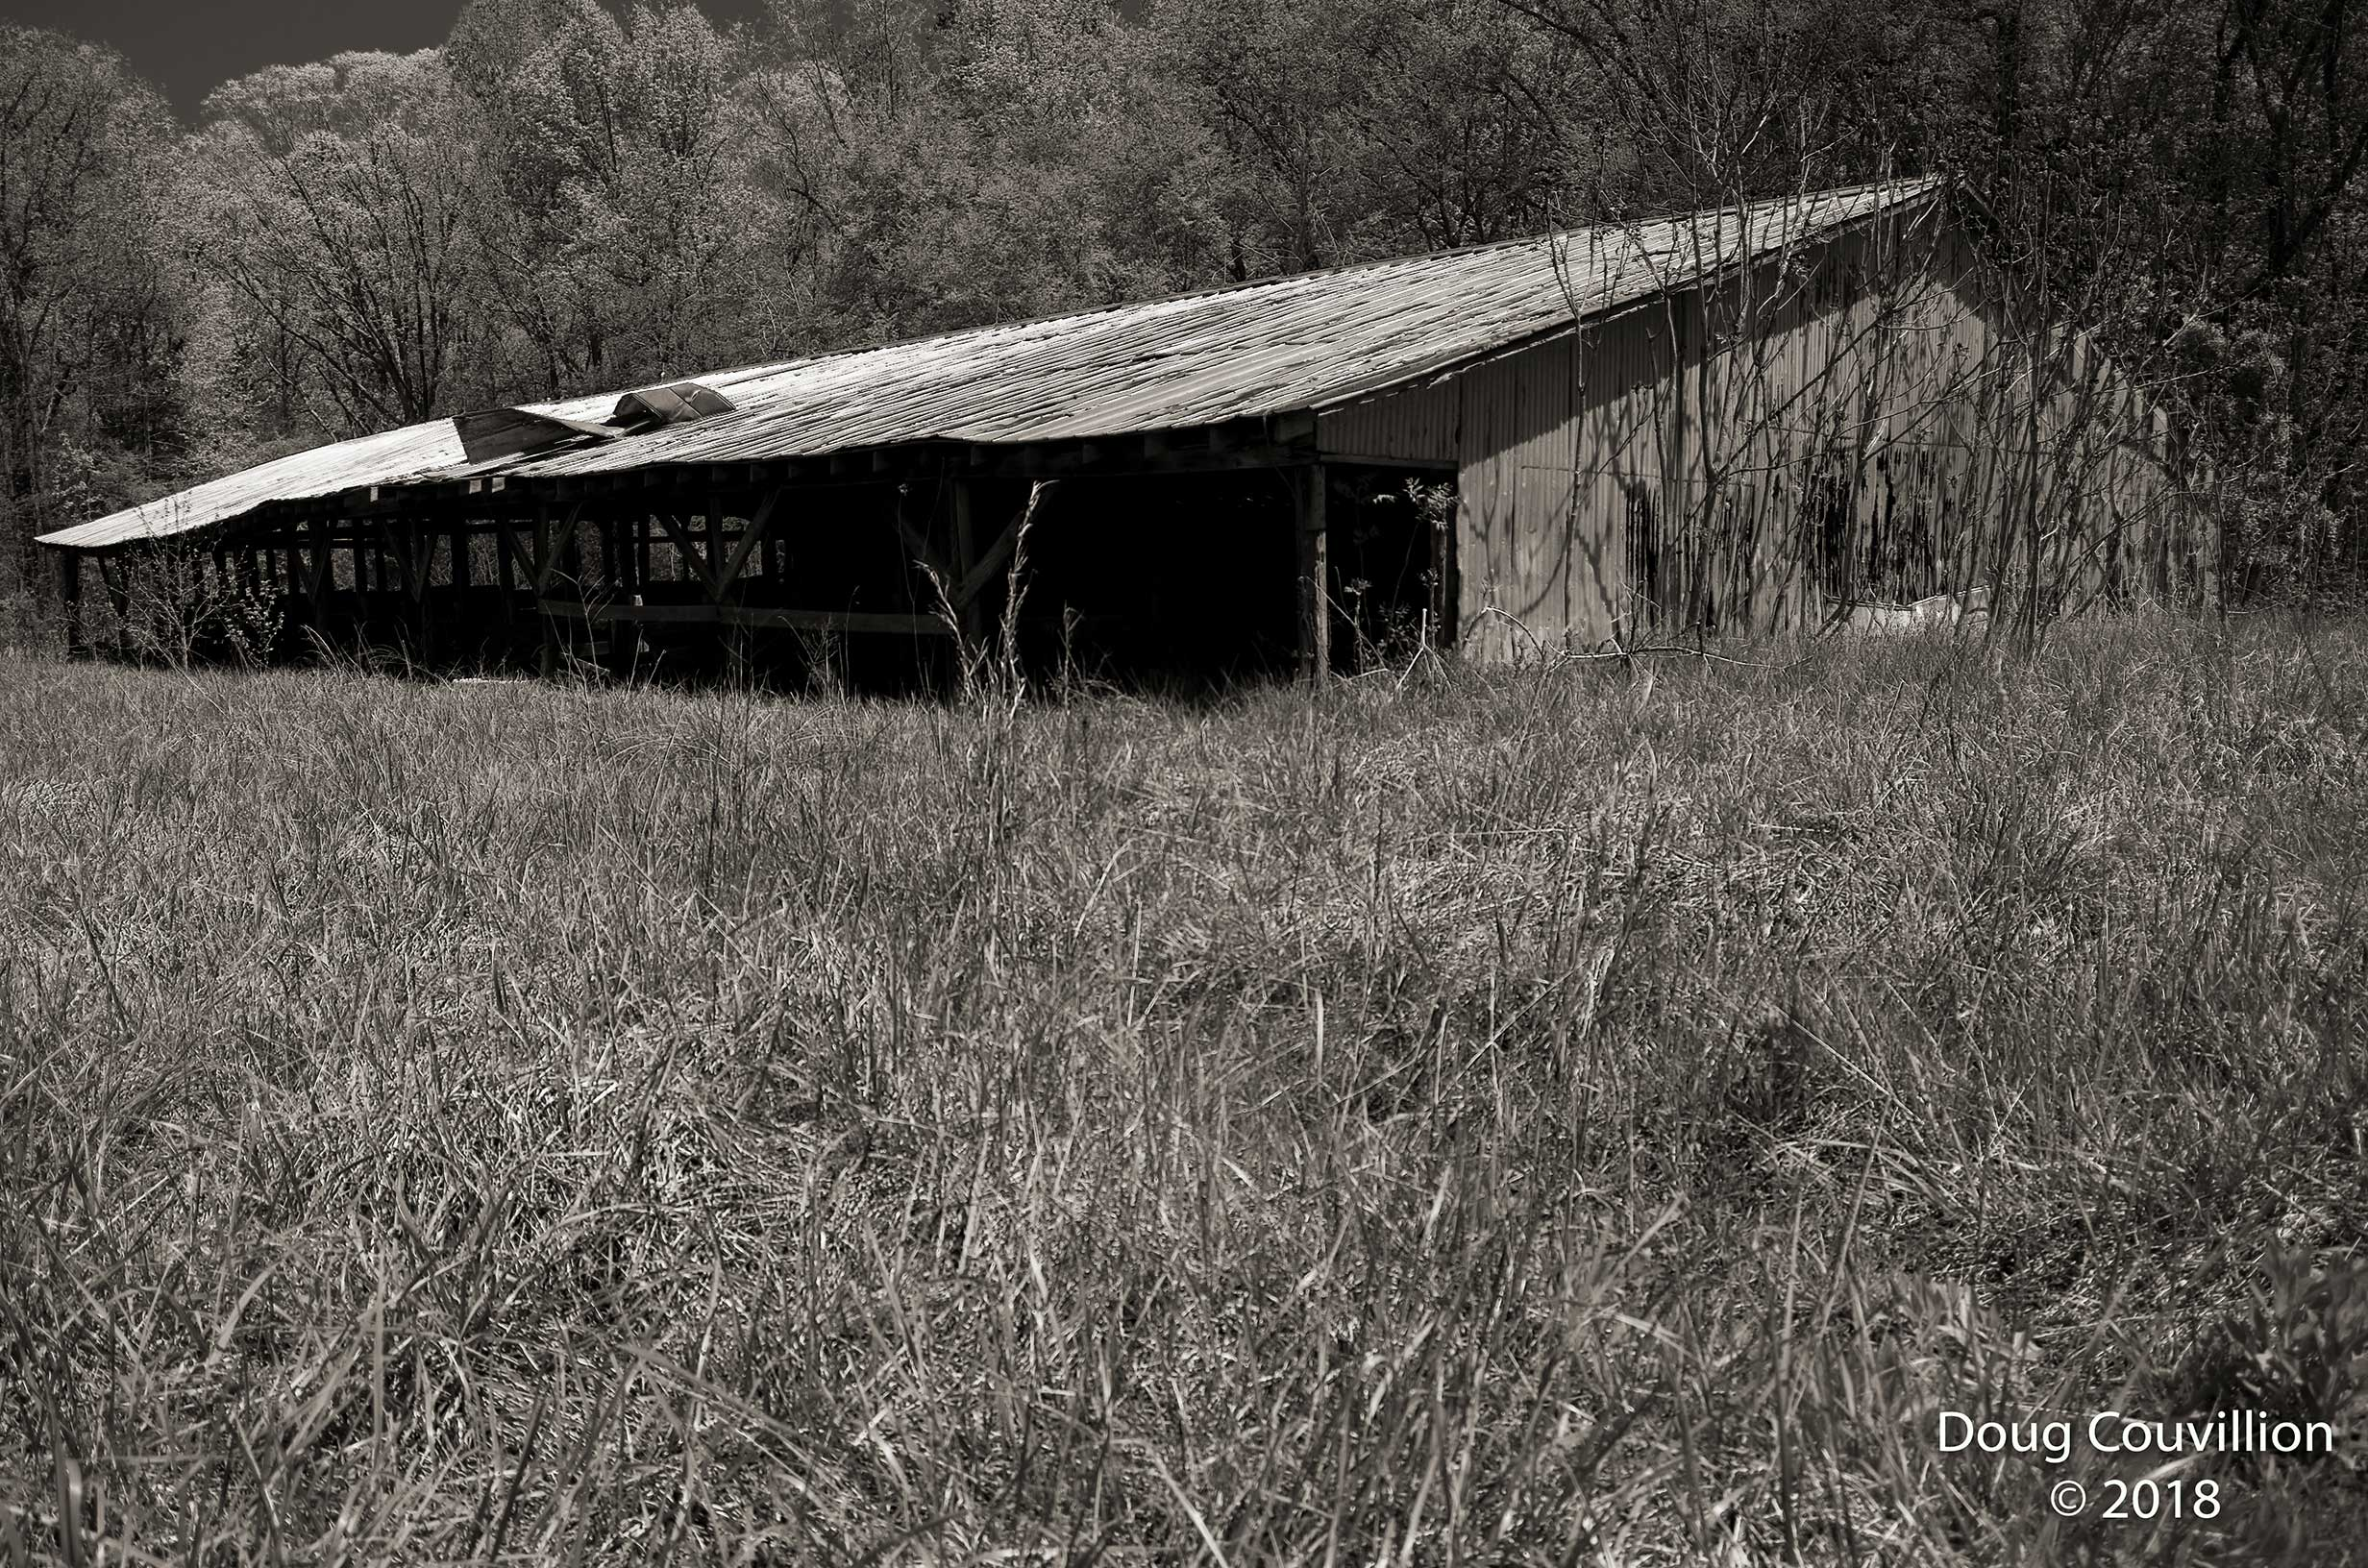 black and white photograph of the milking parlor at Amelia Wildlife Management Area in Amelia County, Virginia by Doug Couvillion